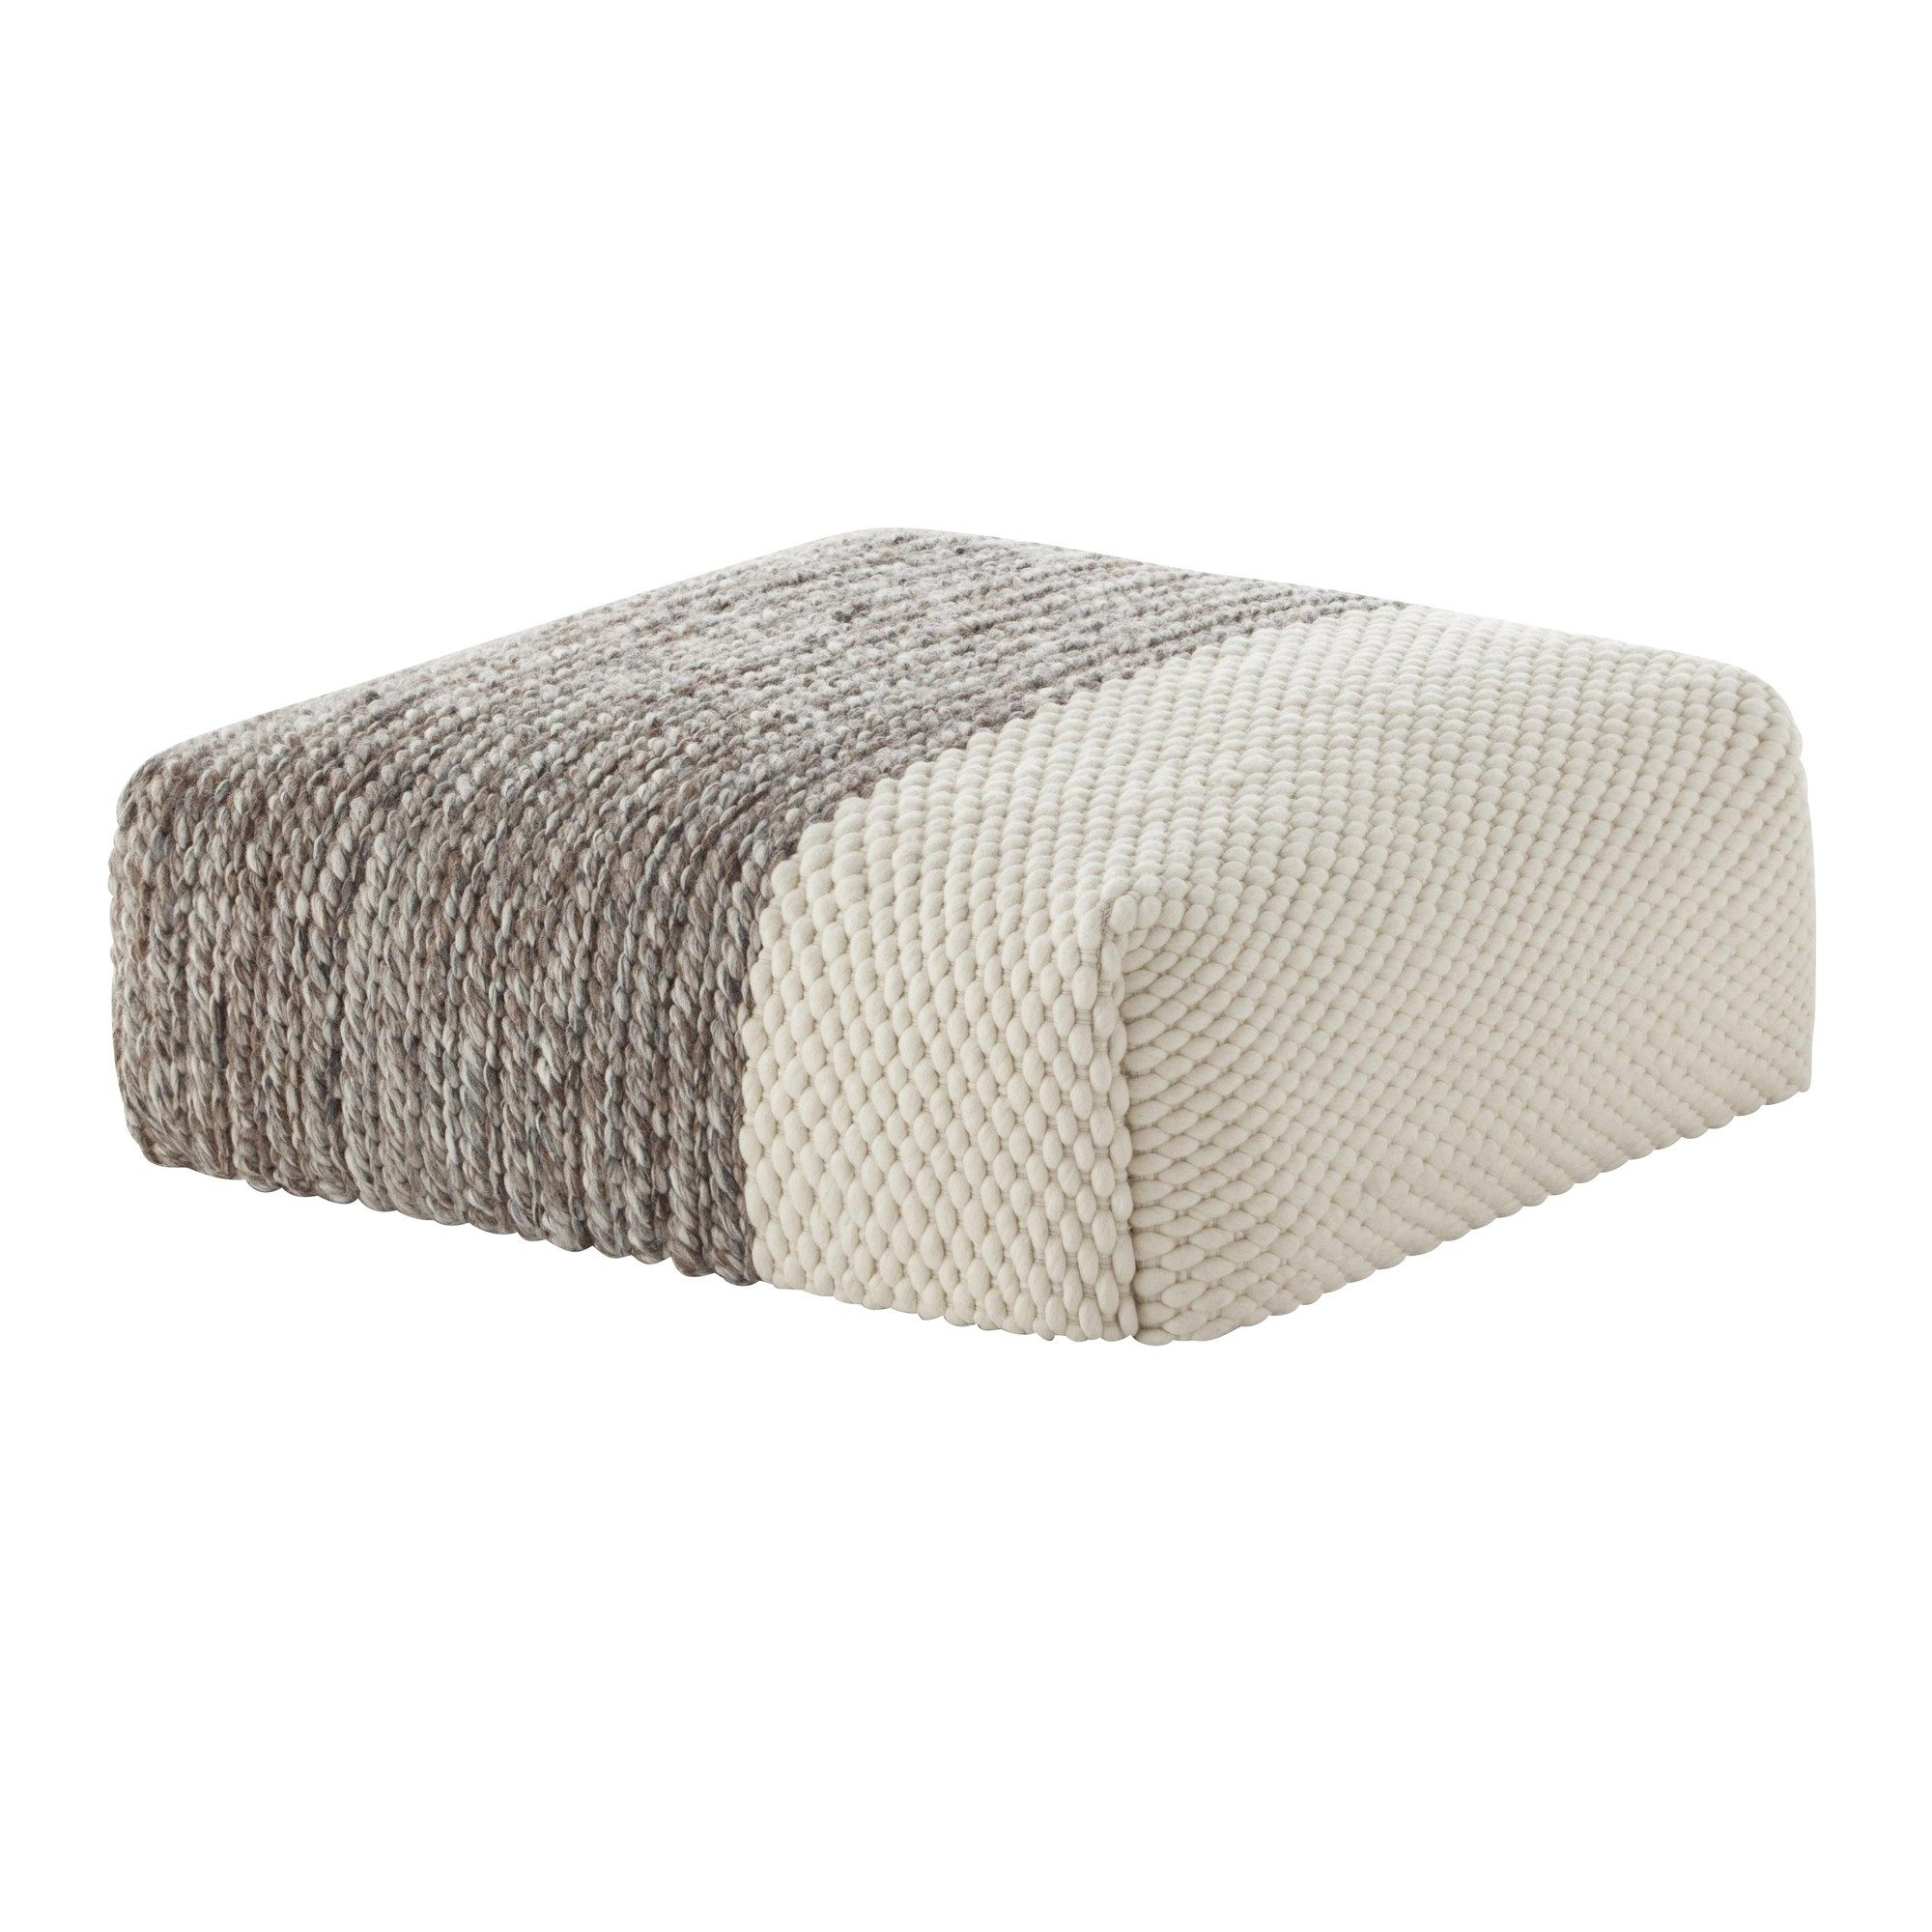 Gan Mangas Space Square Pouf Ambientedirect